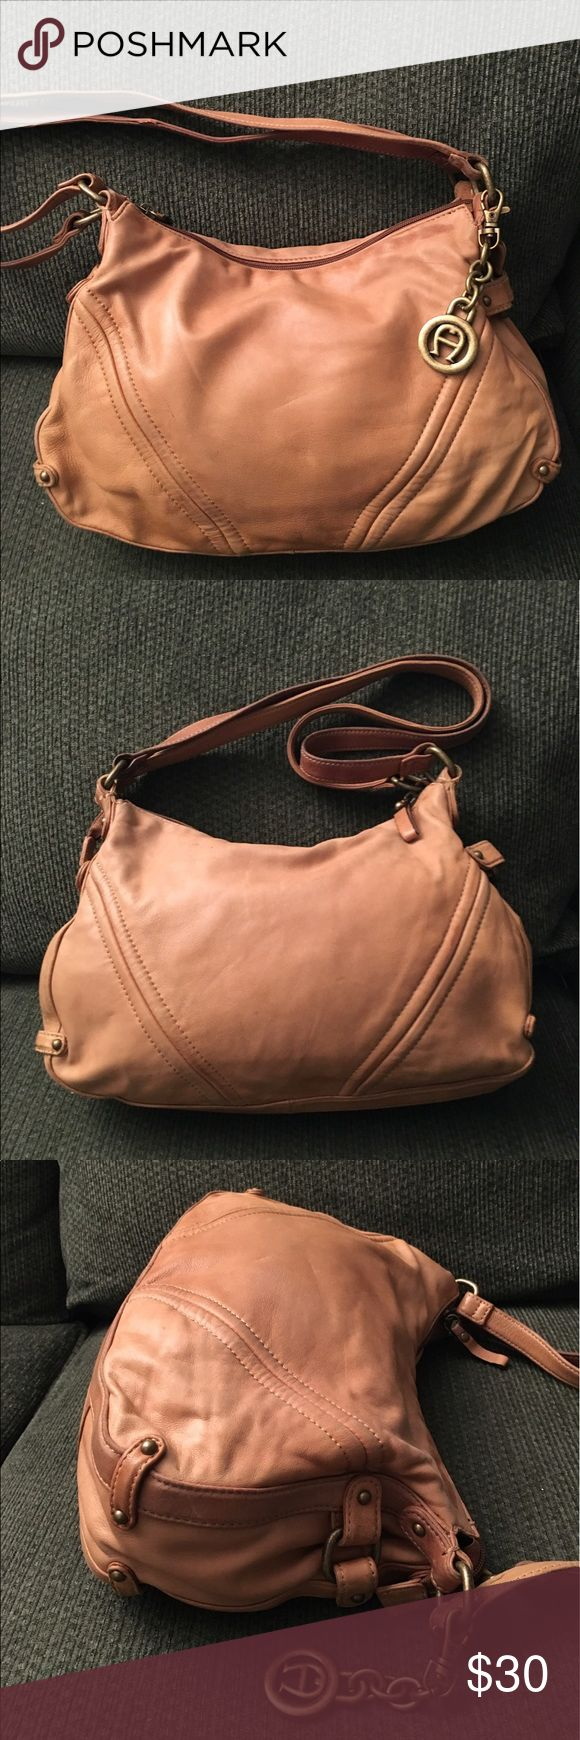 Etienne Aigner Camel Leather Handbag Purse Nice pre-owned soft leather handbag. There is wear on the straps. Please see pictures. Etienne Aigner Bags Shoulder Bags